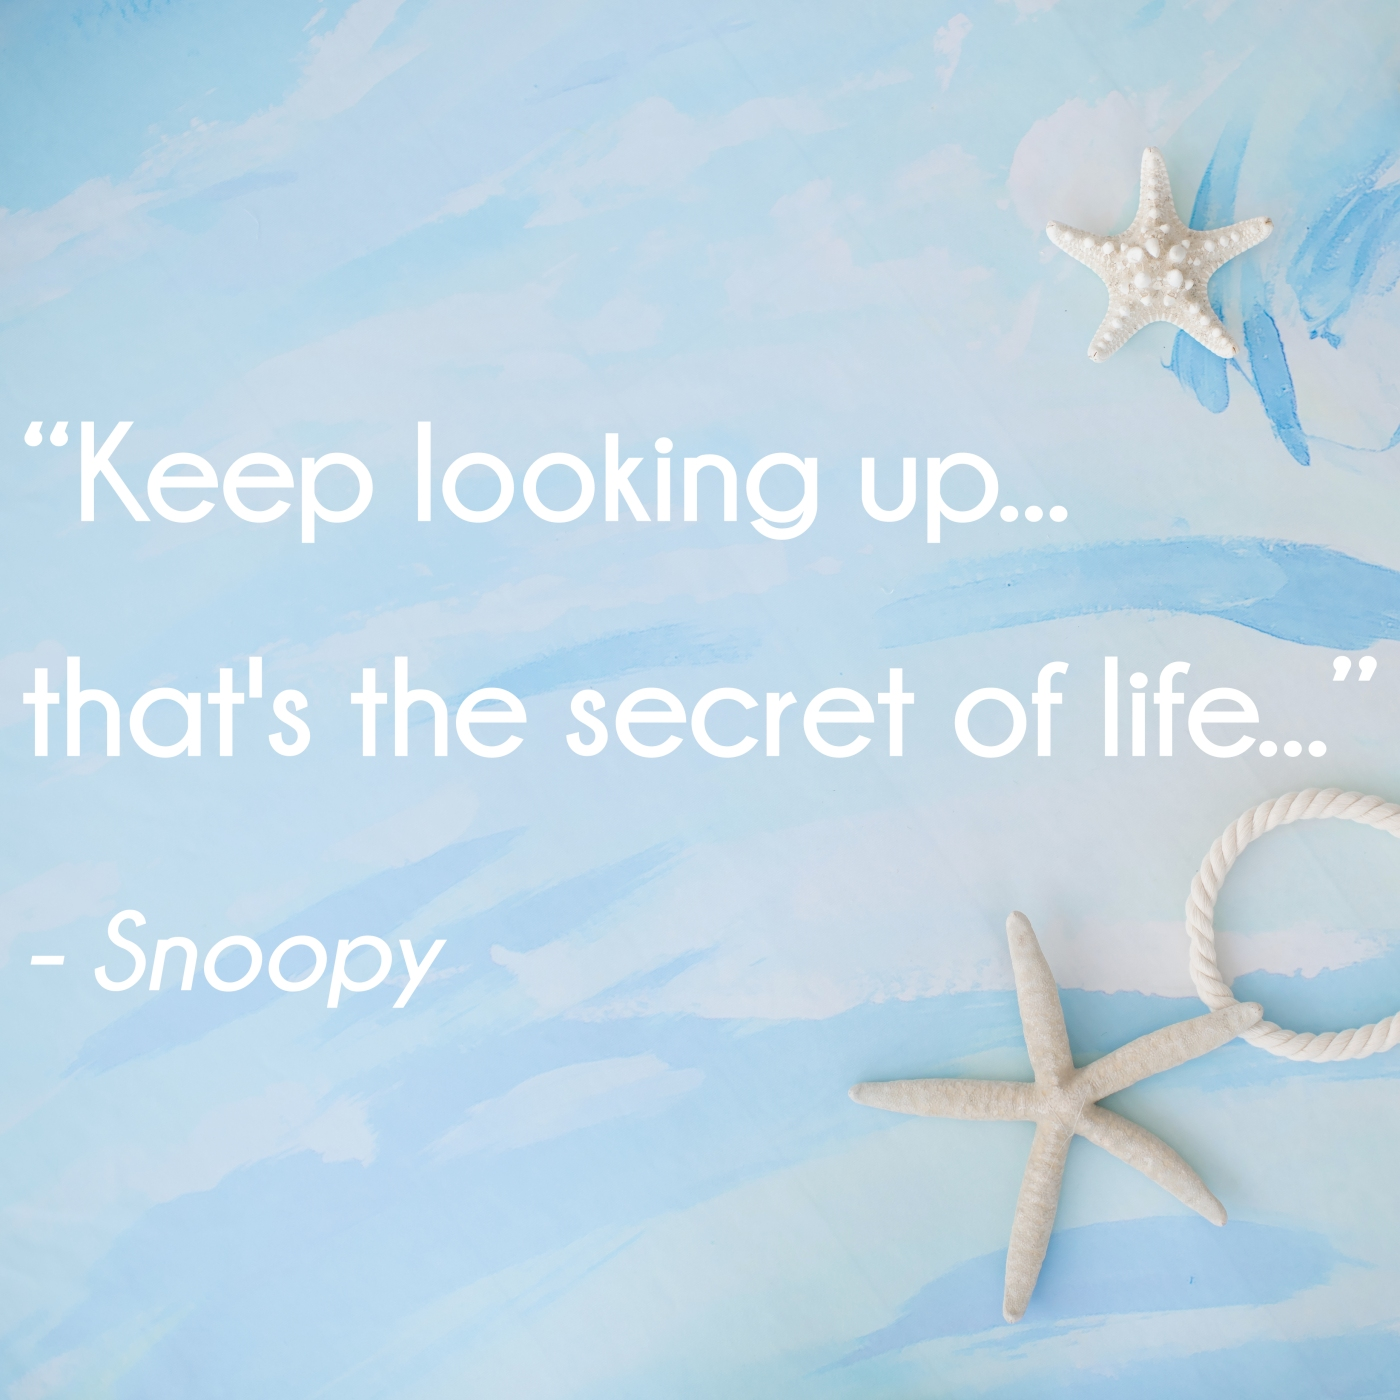 Keep looking up...that's the secret of life...